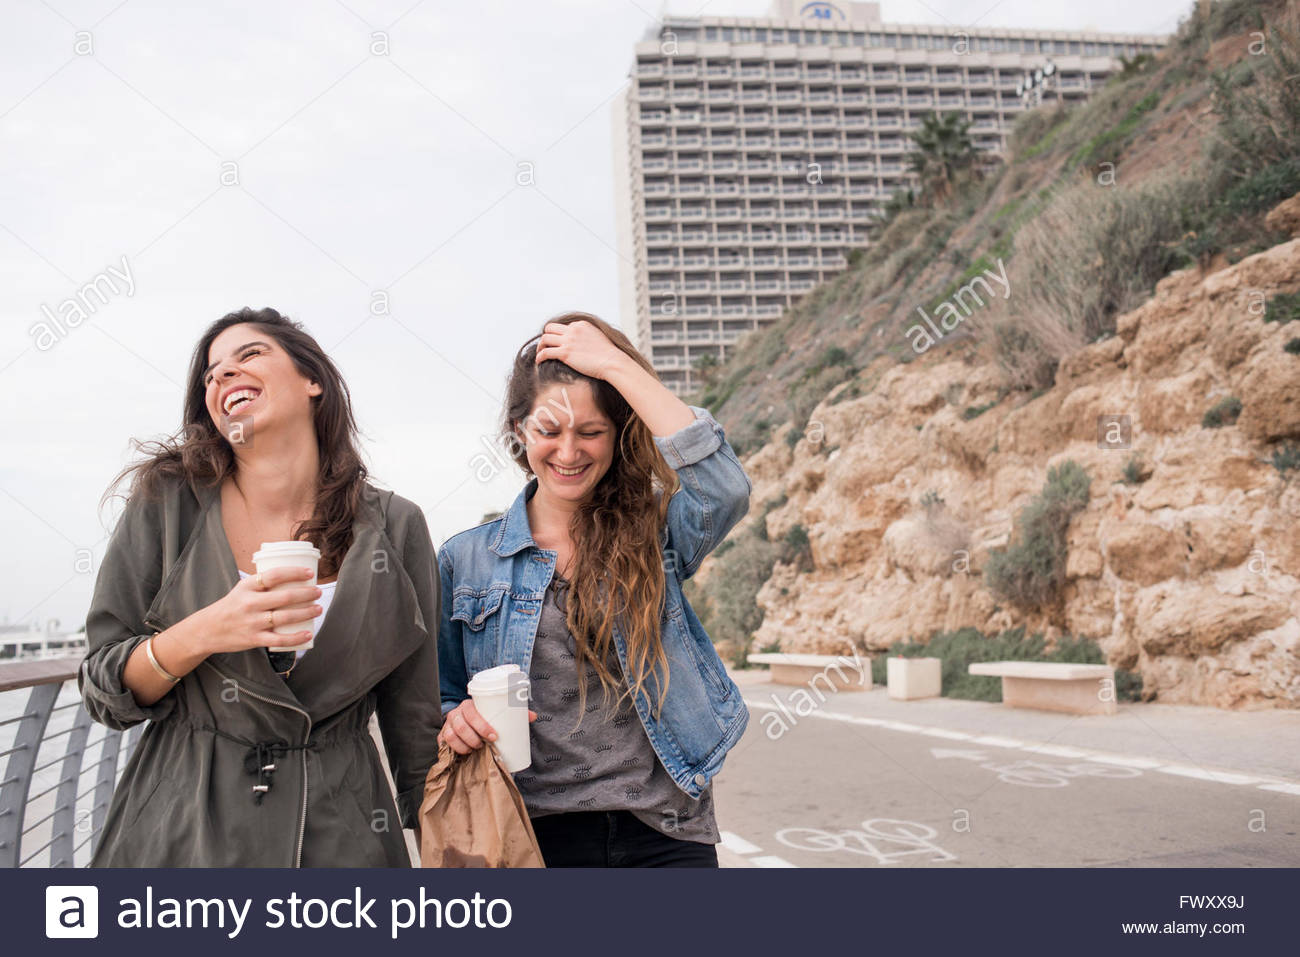 Israel, Tel Aviv, Two smiling women on promenade - Stock Image